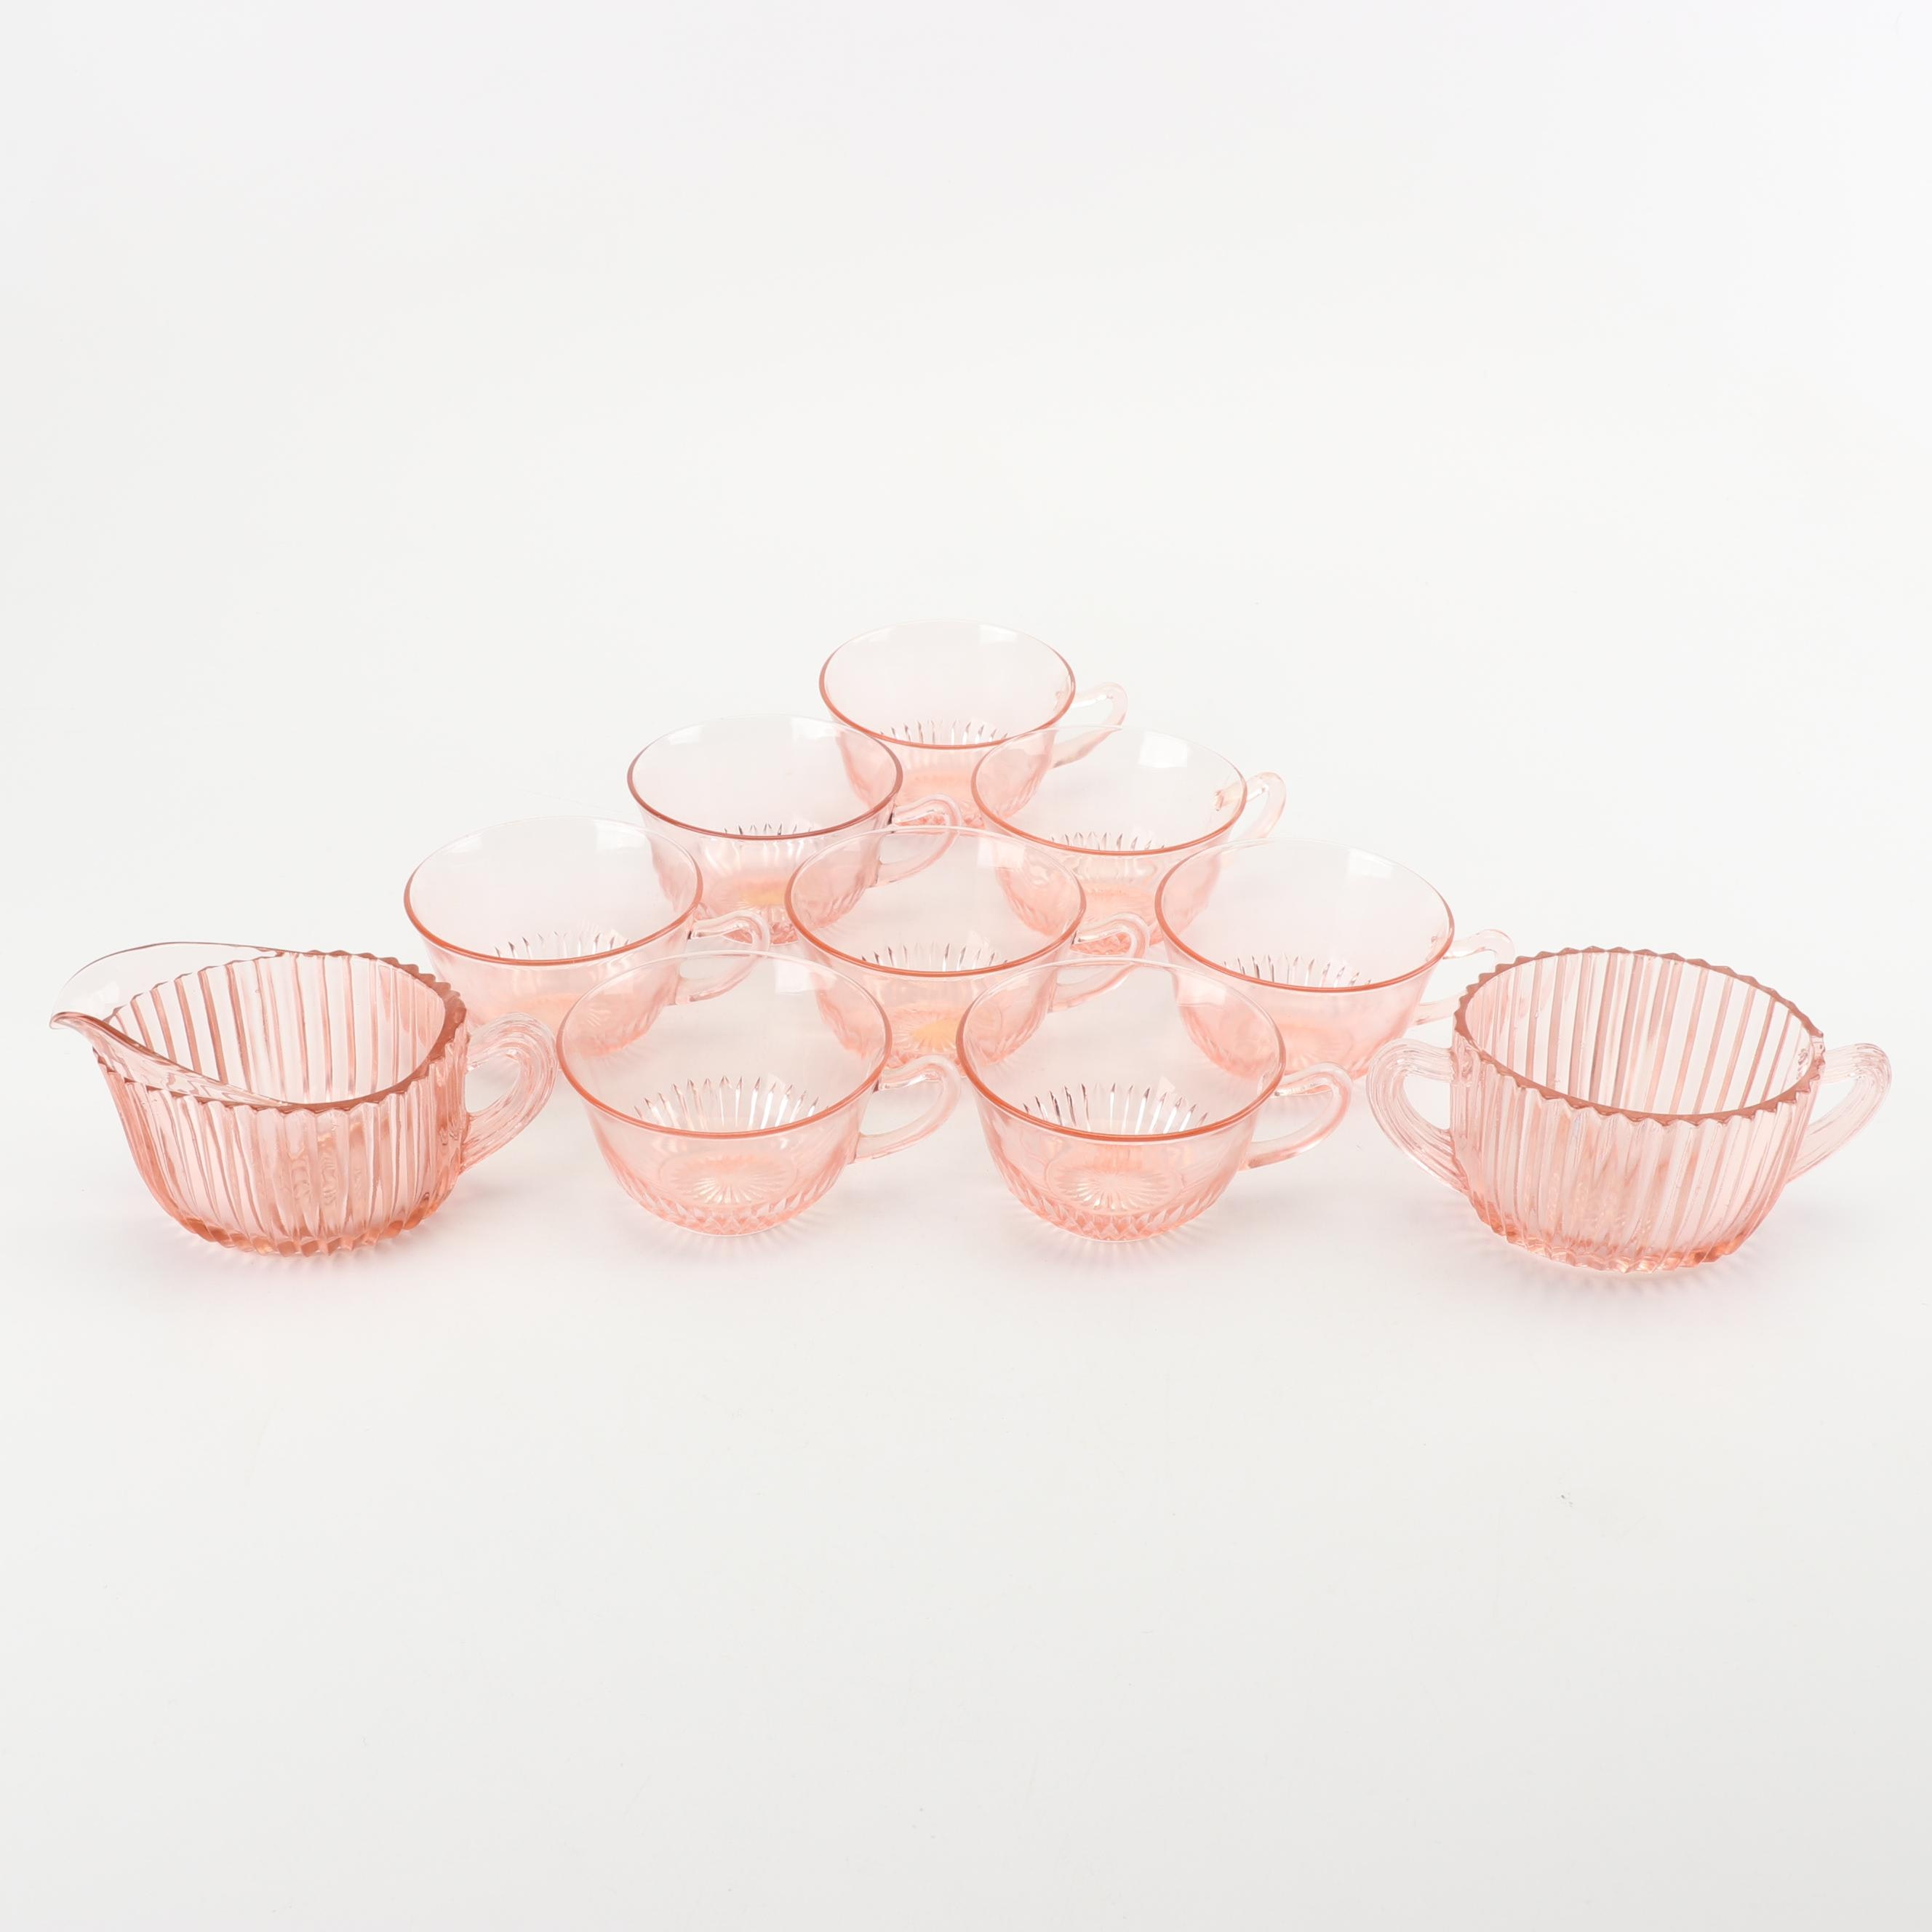 Pink Depression Glass Cups with Creamer and Sugar Set featuring Anchor Hocking